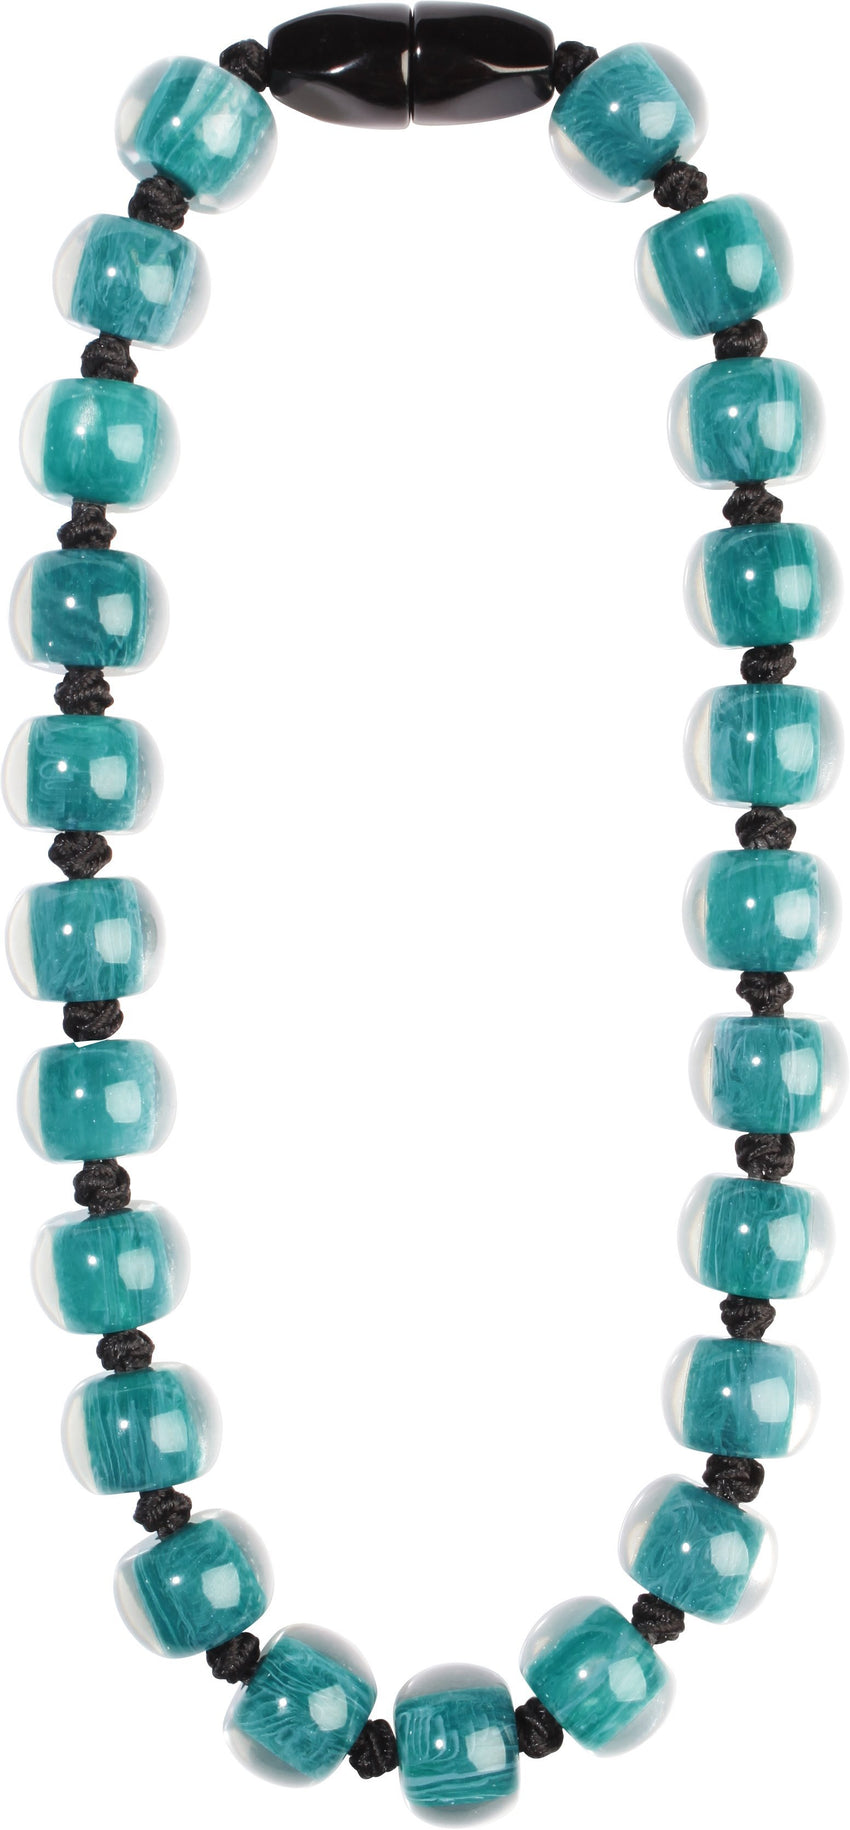 40101189197Q23 Colourful Beads Blue Beads Black Cord 9197 Q23